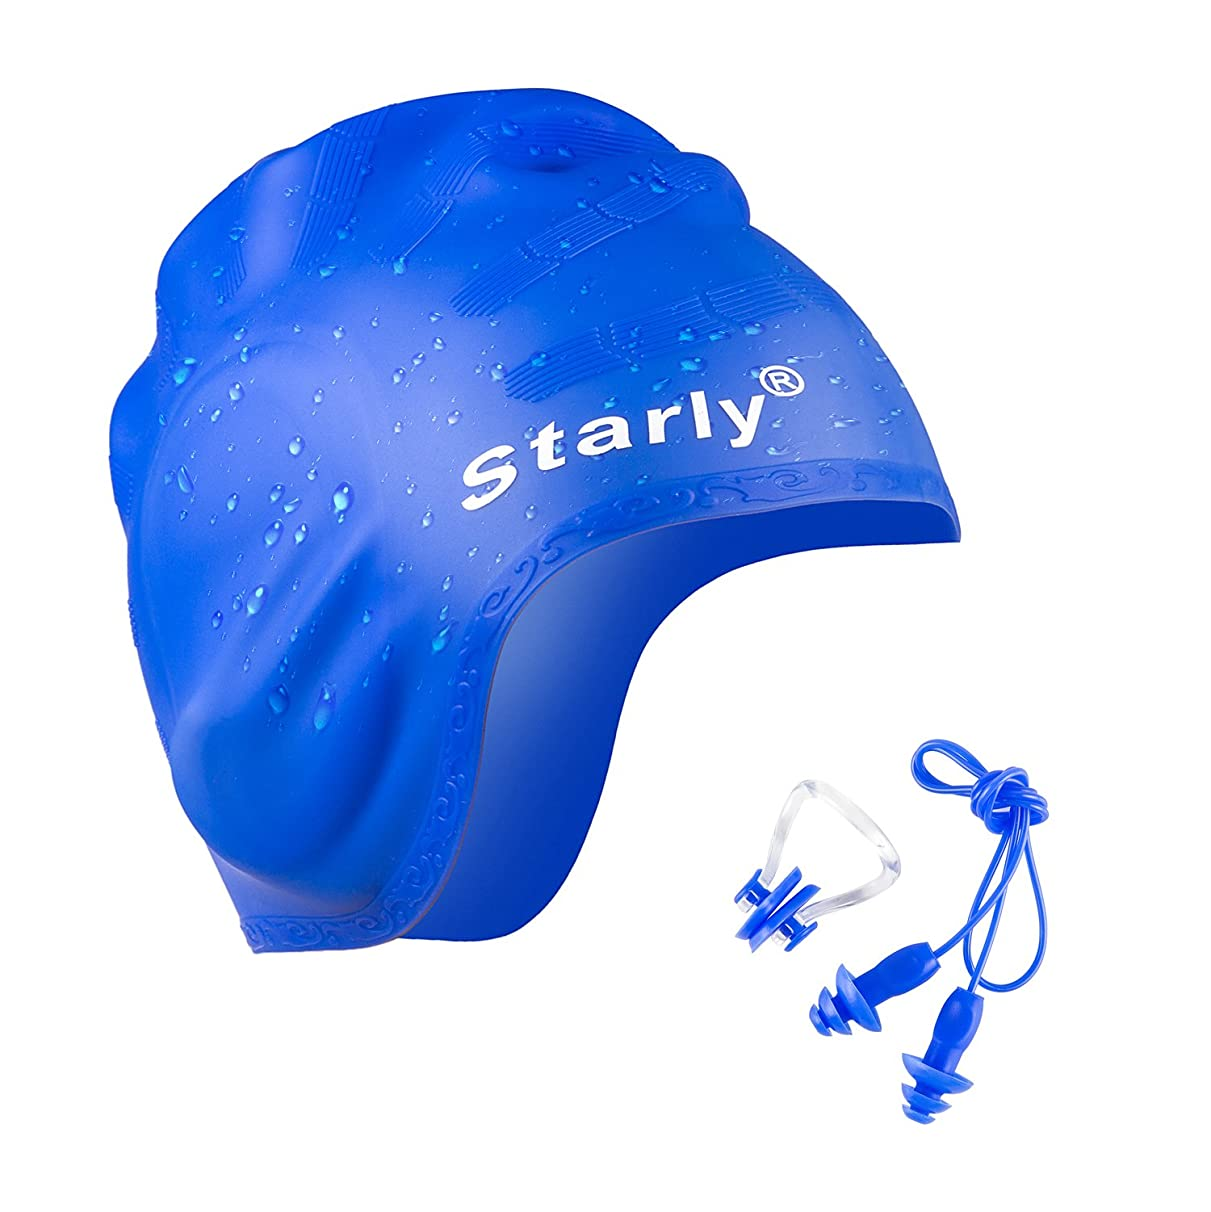 Silicon Swimming Cap,Ear Plugs and Nose Clip Set, for Teenagers, Adult and Long Hair Women,with 3D Ergonomic Design Ear Pockets and Fashion Strip Design,Blue/Black/Pink Color Swimming Hats,Starly Brand